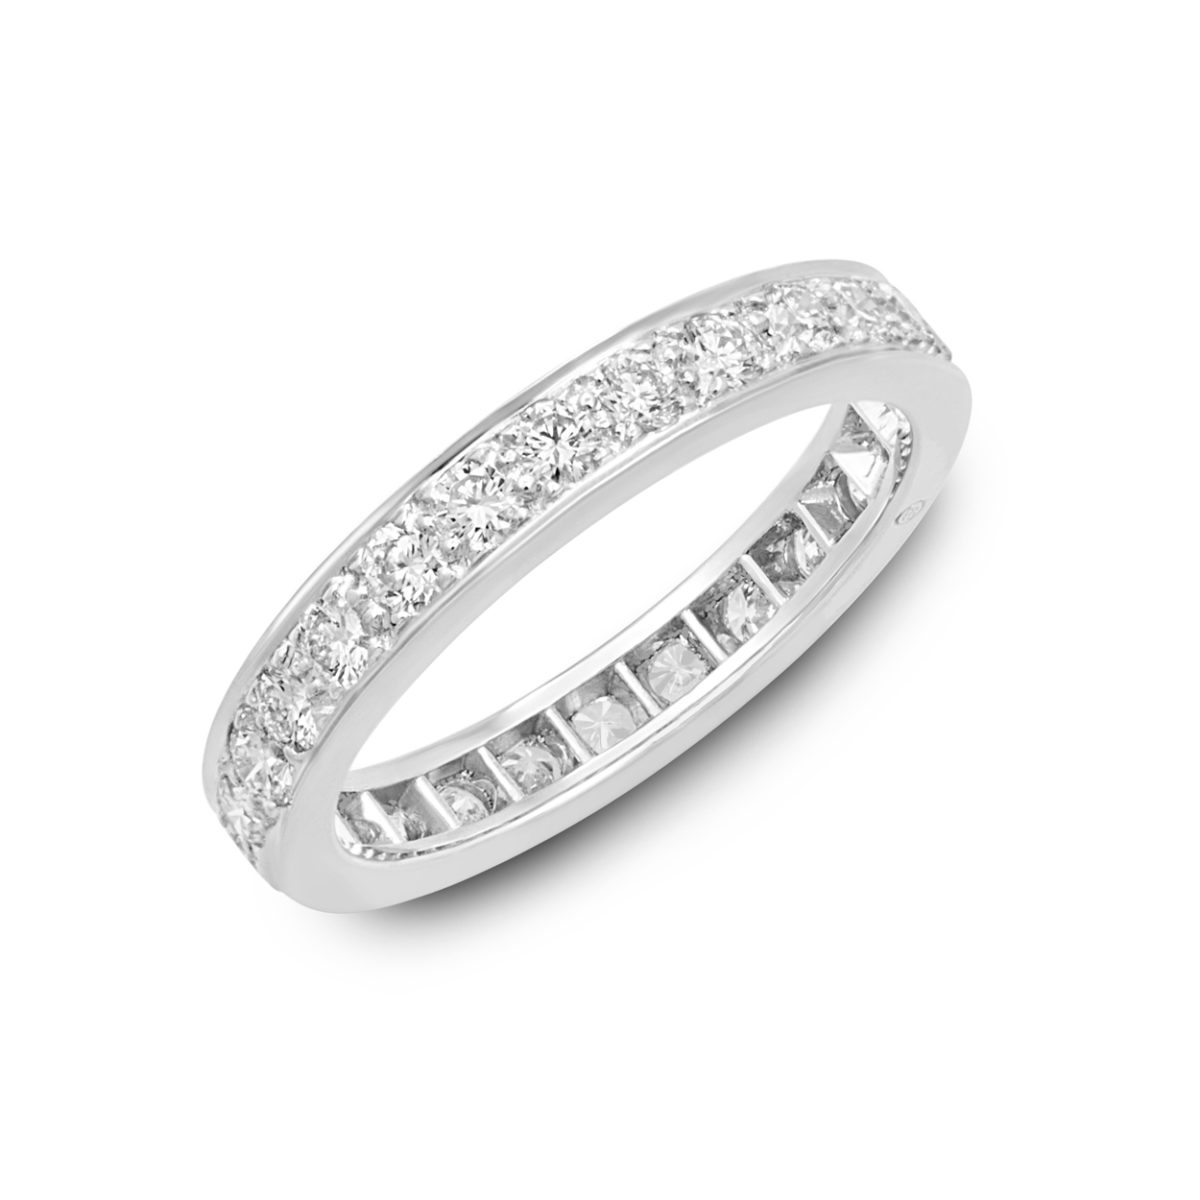 diamond eternity bands gumuchian band ct brilliant ring p tw round eac